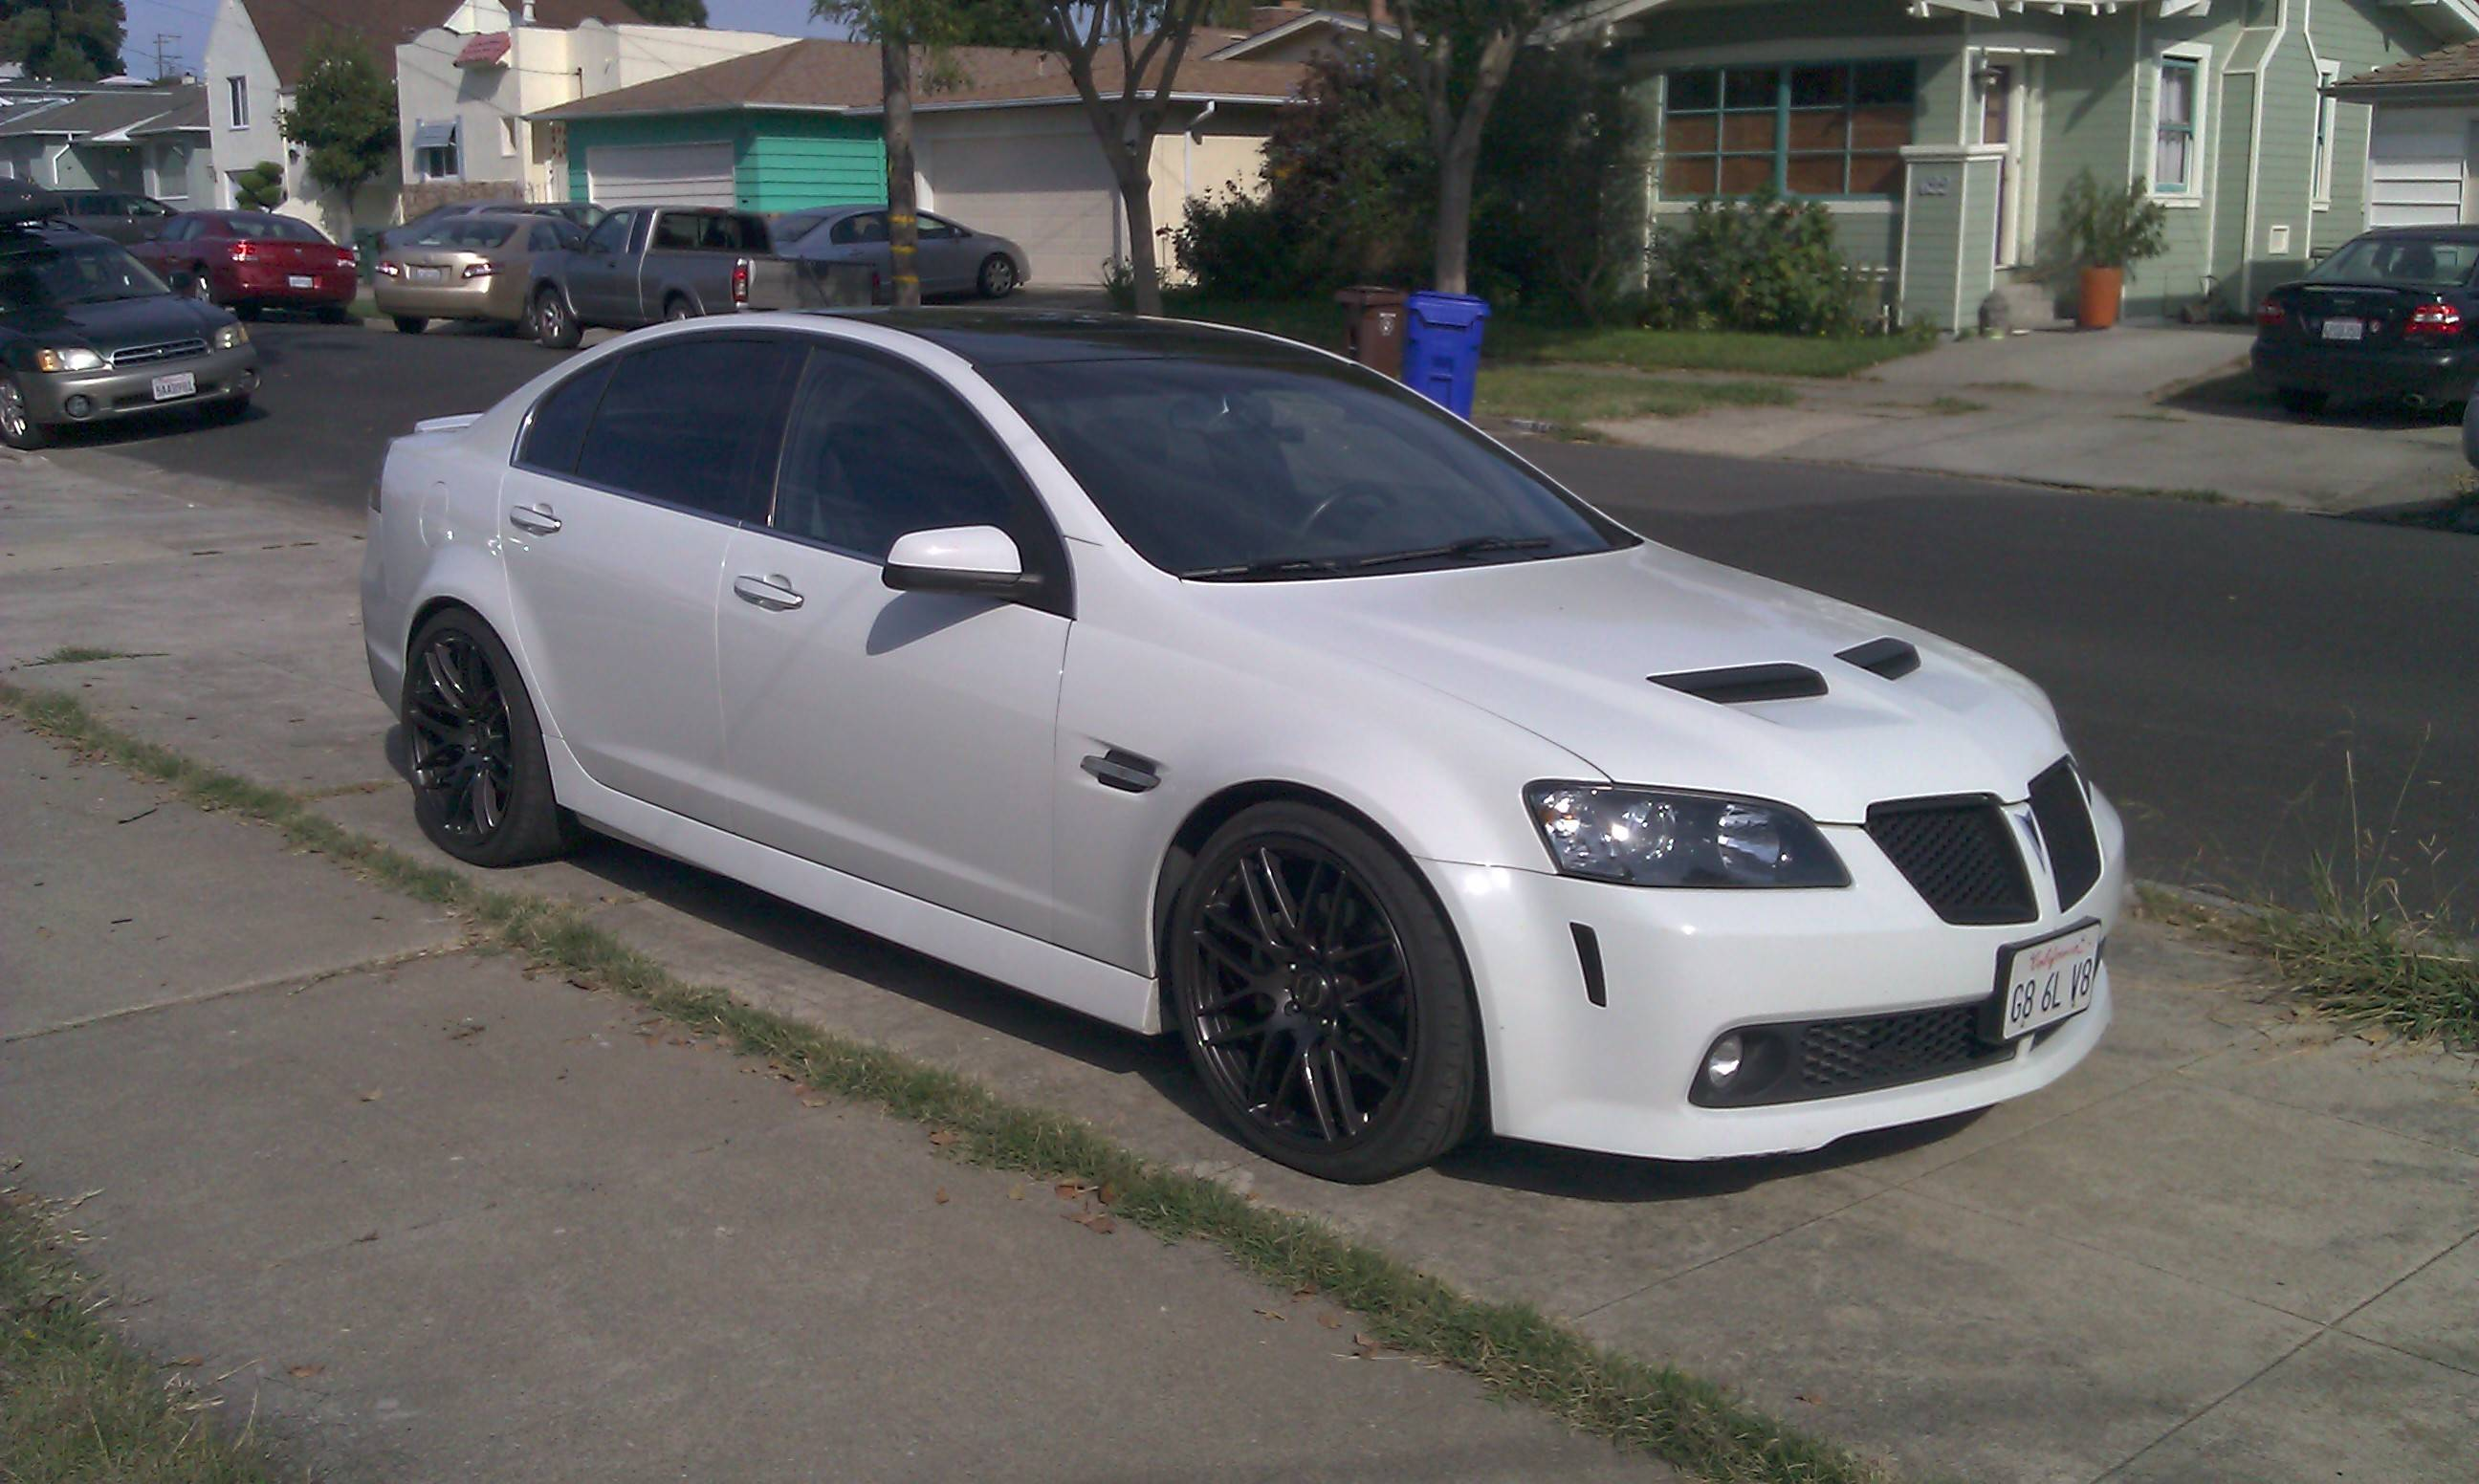 lowering springs h r vs eibach vs tein pontiac g8 forum. Black Bedroom Furniture Sets. Home Design Ideas